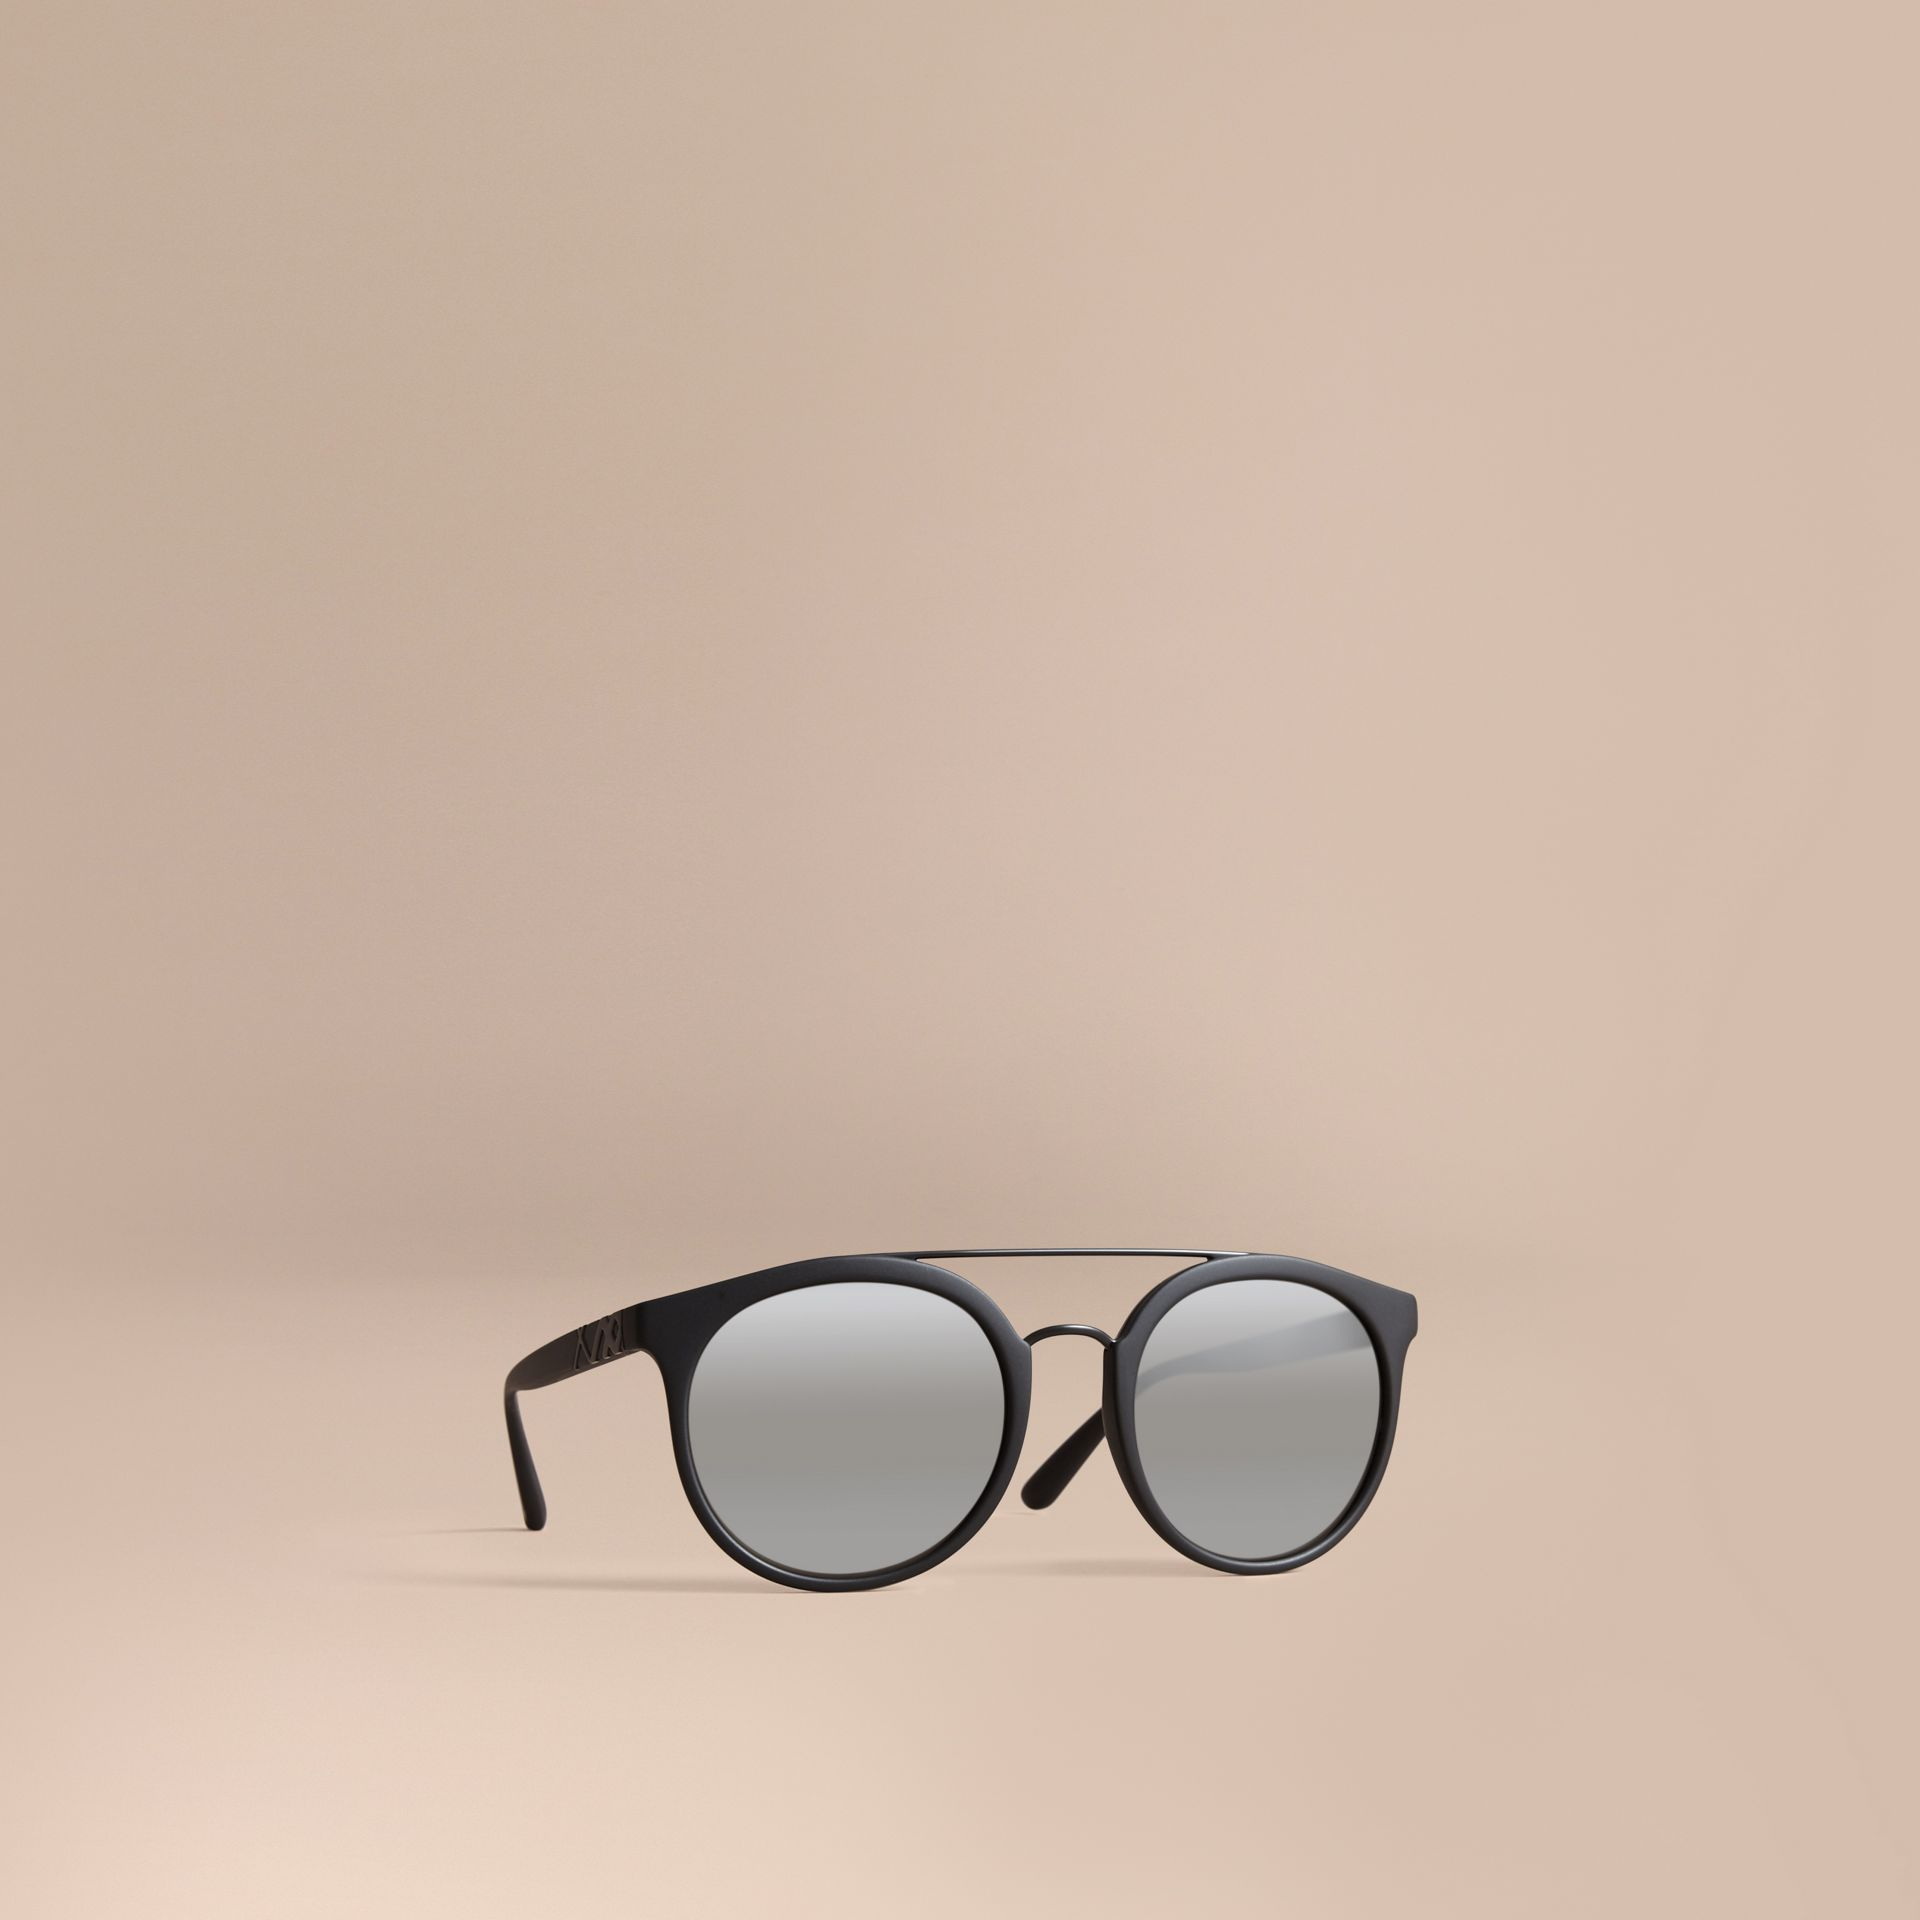 Top Bar Round Frame Sunglasses in Black - Men | Burberry - gallery image 1